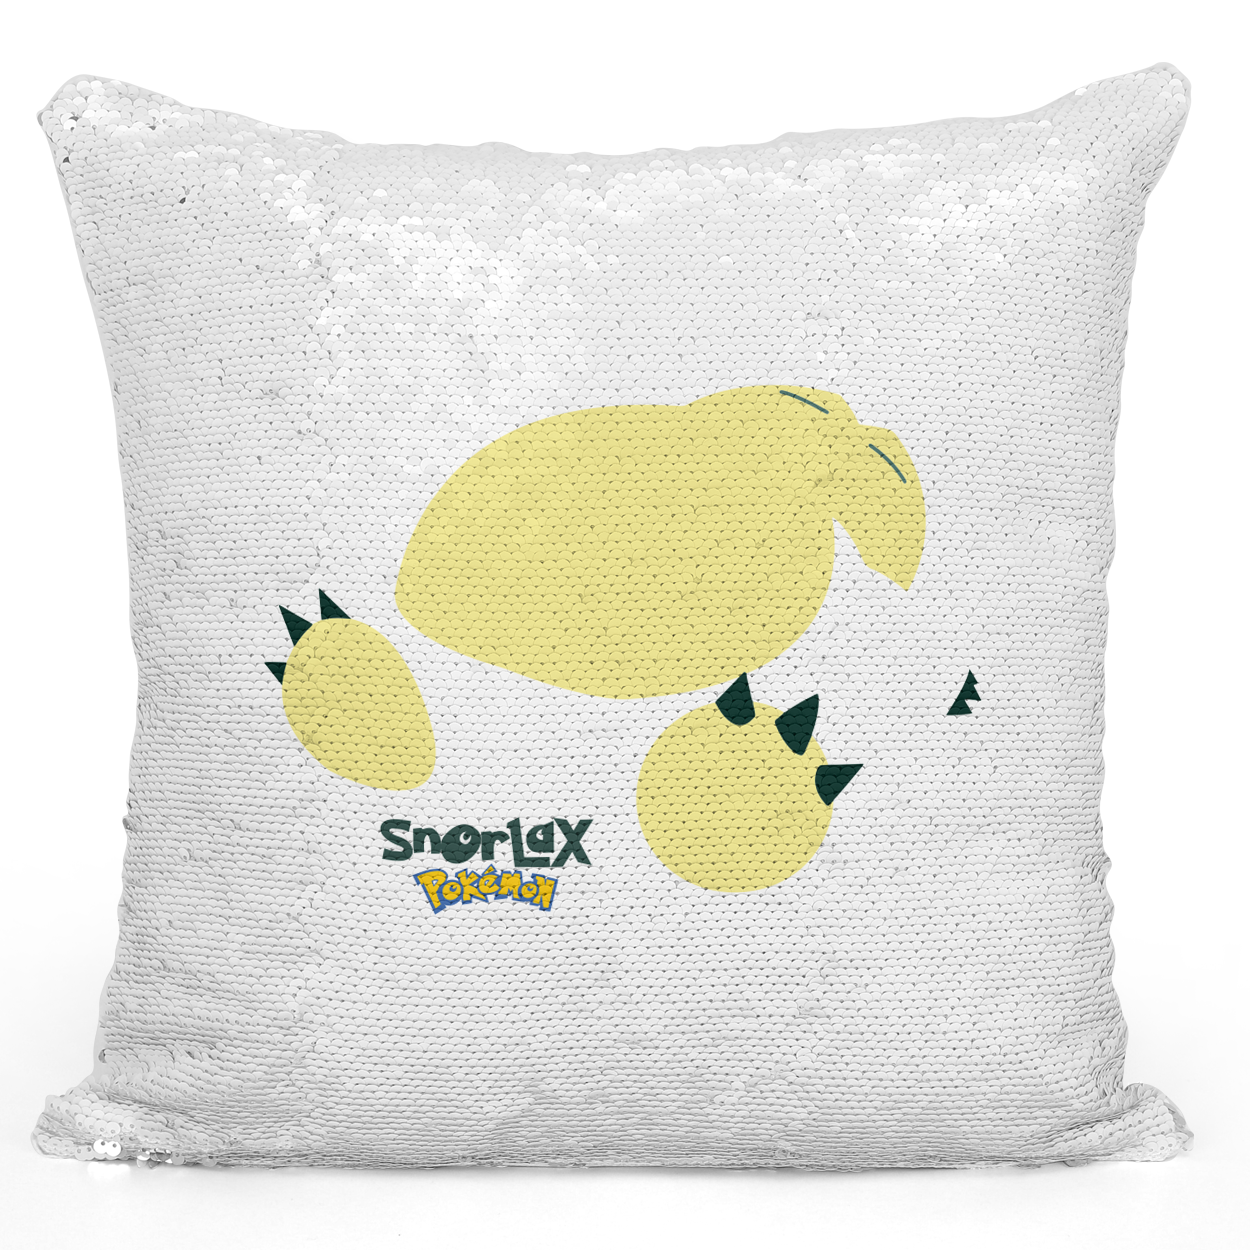 Sequin Pillow Magic Mermaid Throw Pillow Game Pillow Snorlax Fans Pillow - Premium 100% Polyester 16 x 16 inch Square Modern Livingroom Decorative Pillow Loud Universe